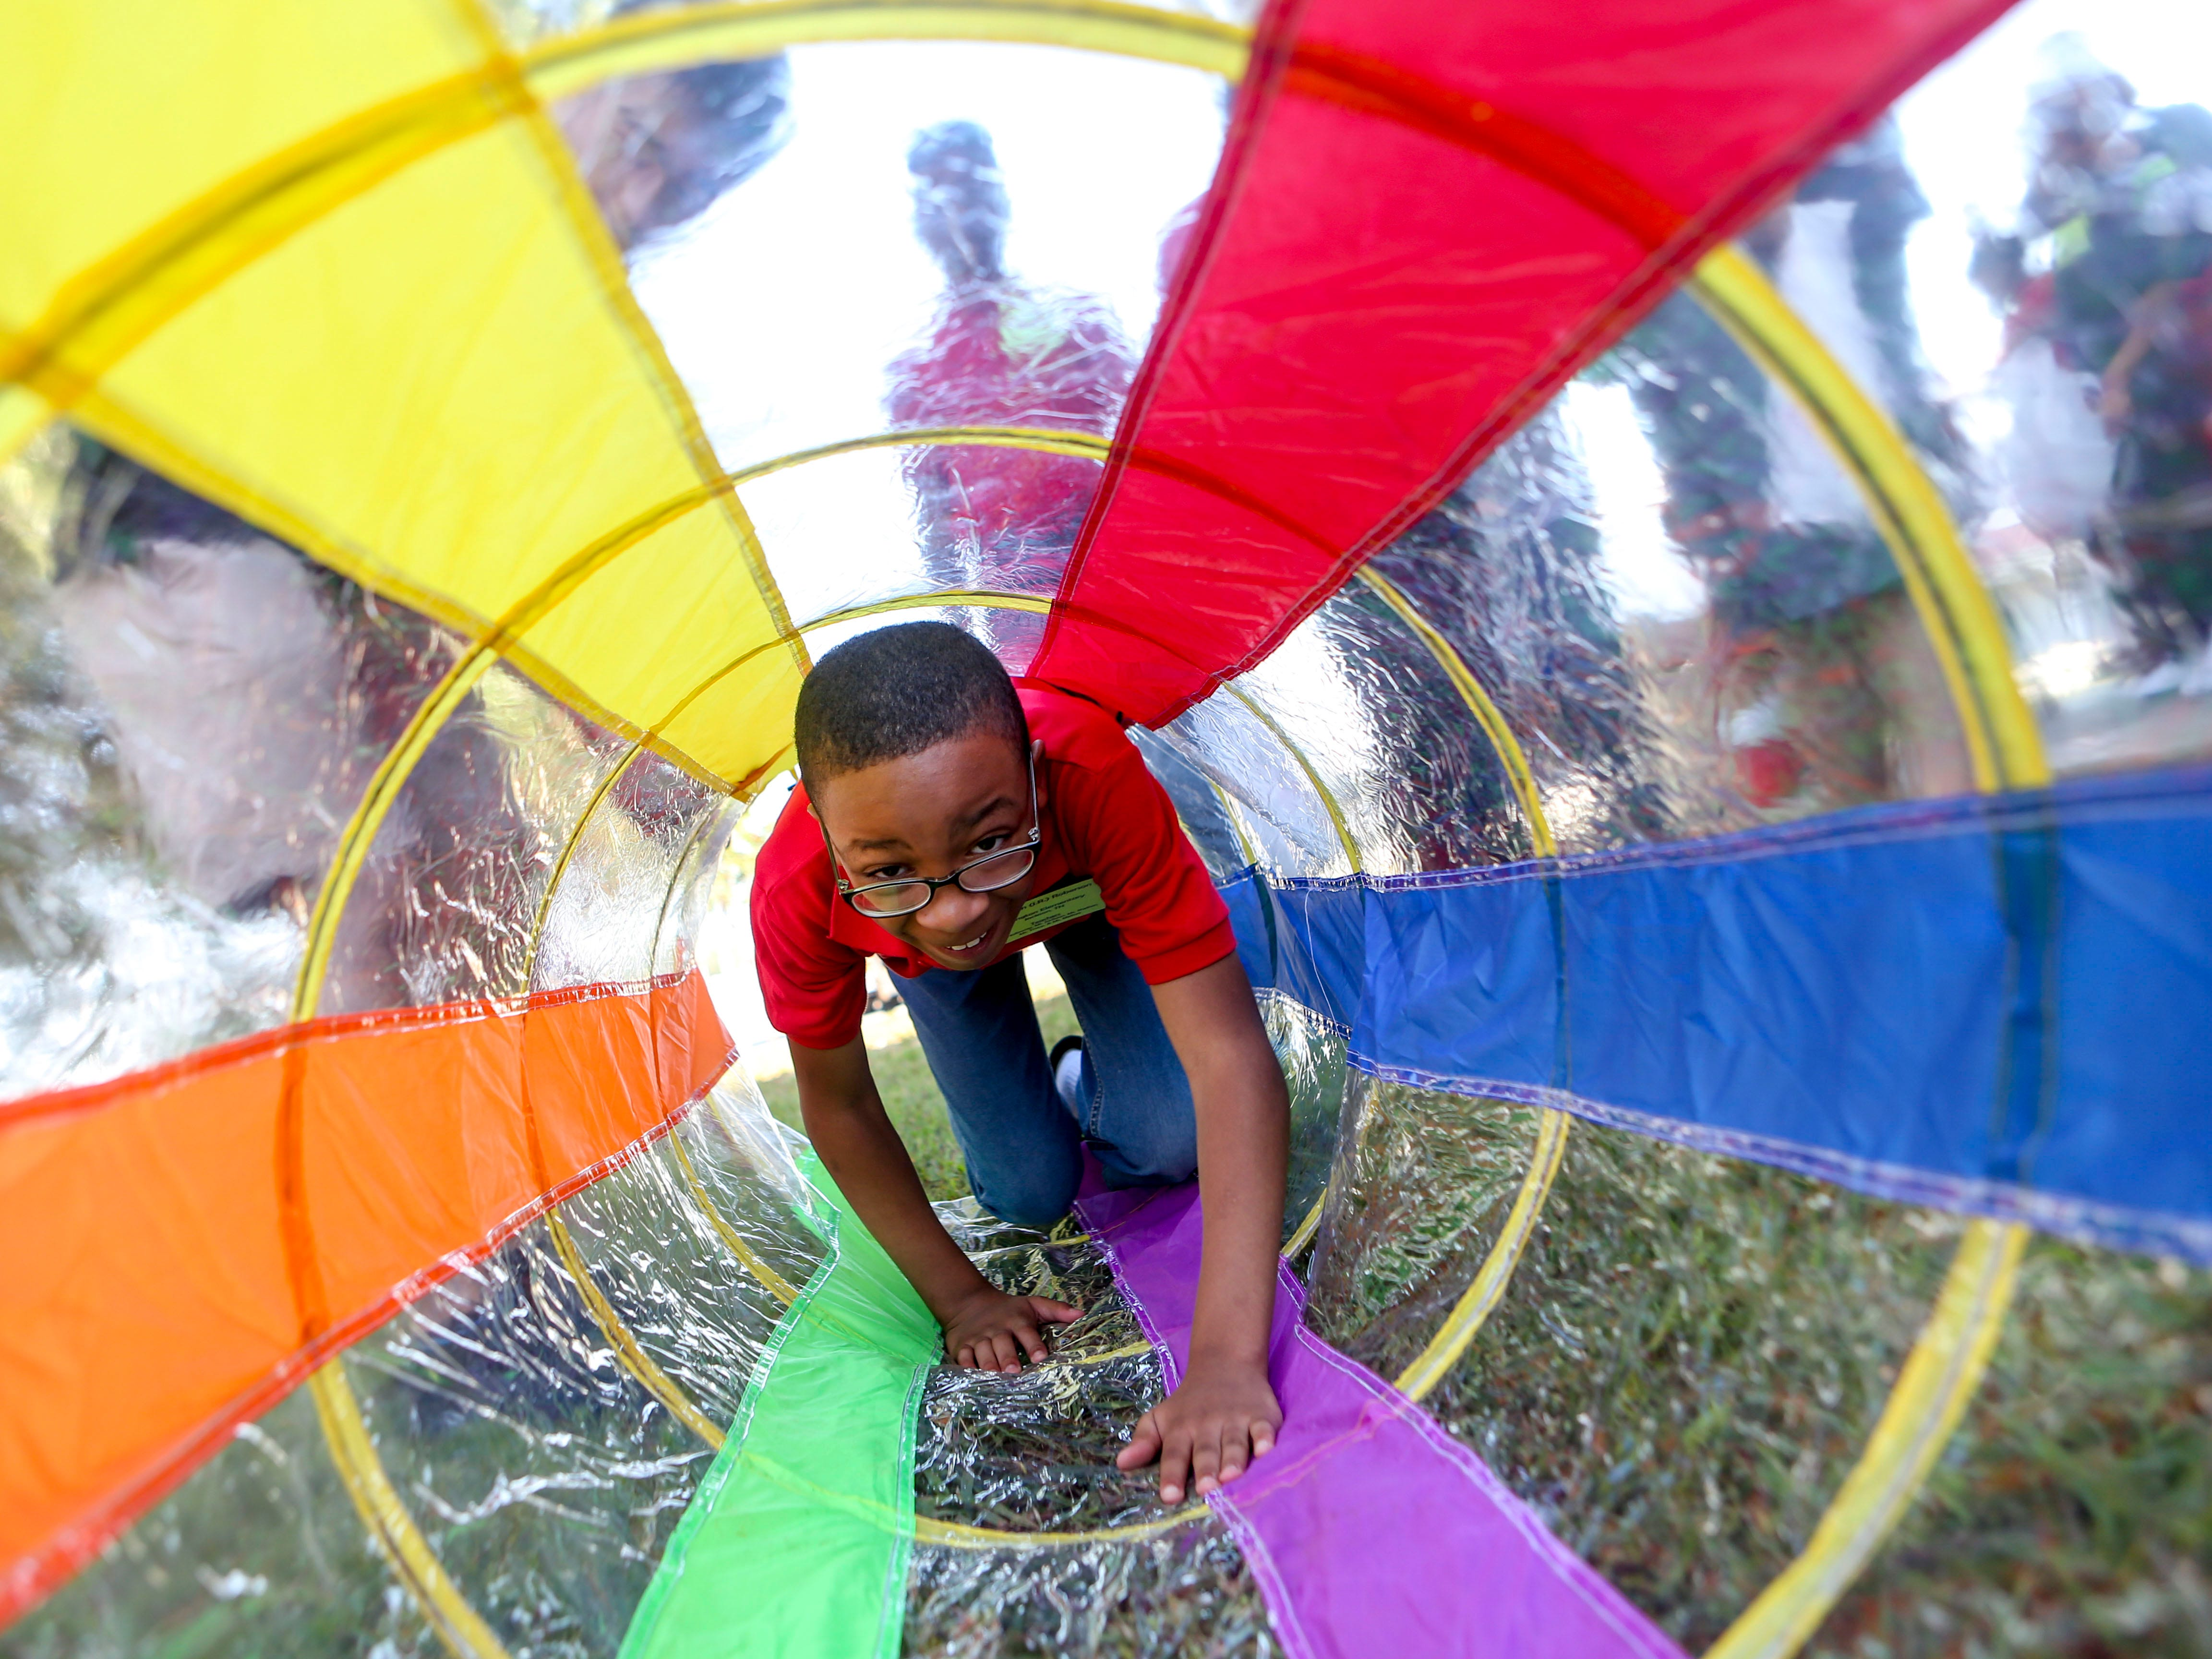 A young boy climbs through a small tunnel obstacle at the Day of Champions celebration held at Jackson Fairgrounds Park in Jackson, Tenn., on Wednesday, Sept. 19, 2018.